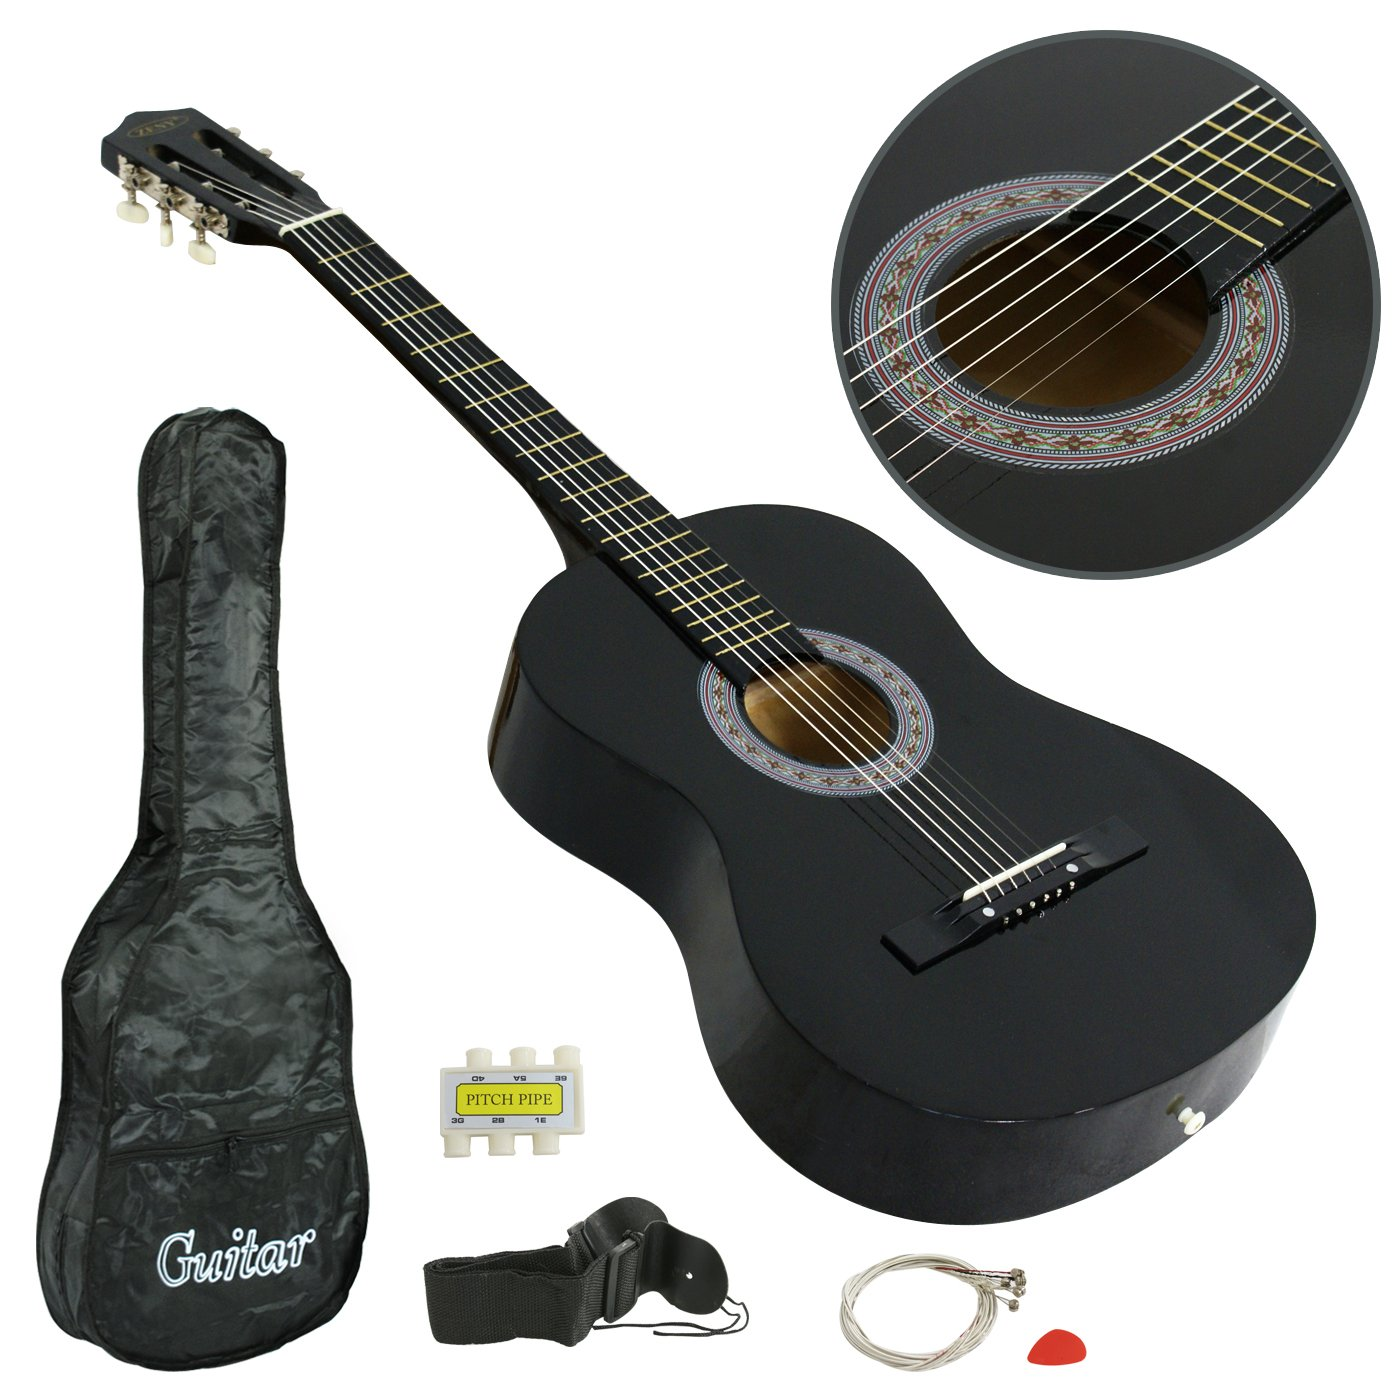 ZENY Beginners 38'' Acoustic Guitar Package Kit for Right-handed Starters Kids Music Lovers w/Case, Strap, Digital E-Tuner, and Pick, Black by ZENY (Image #4)